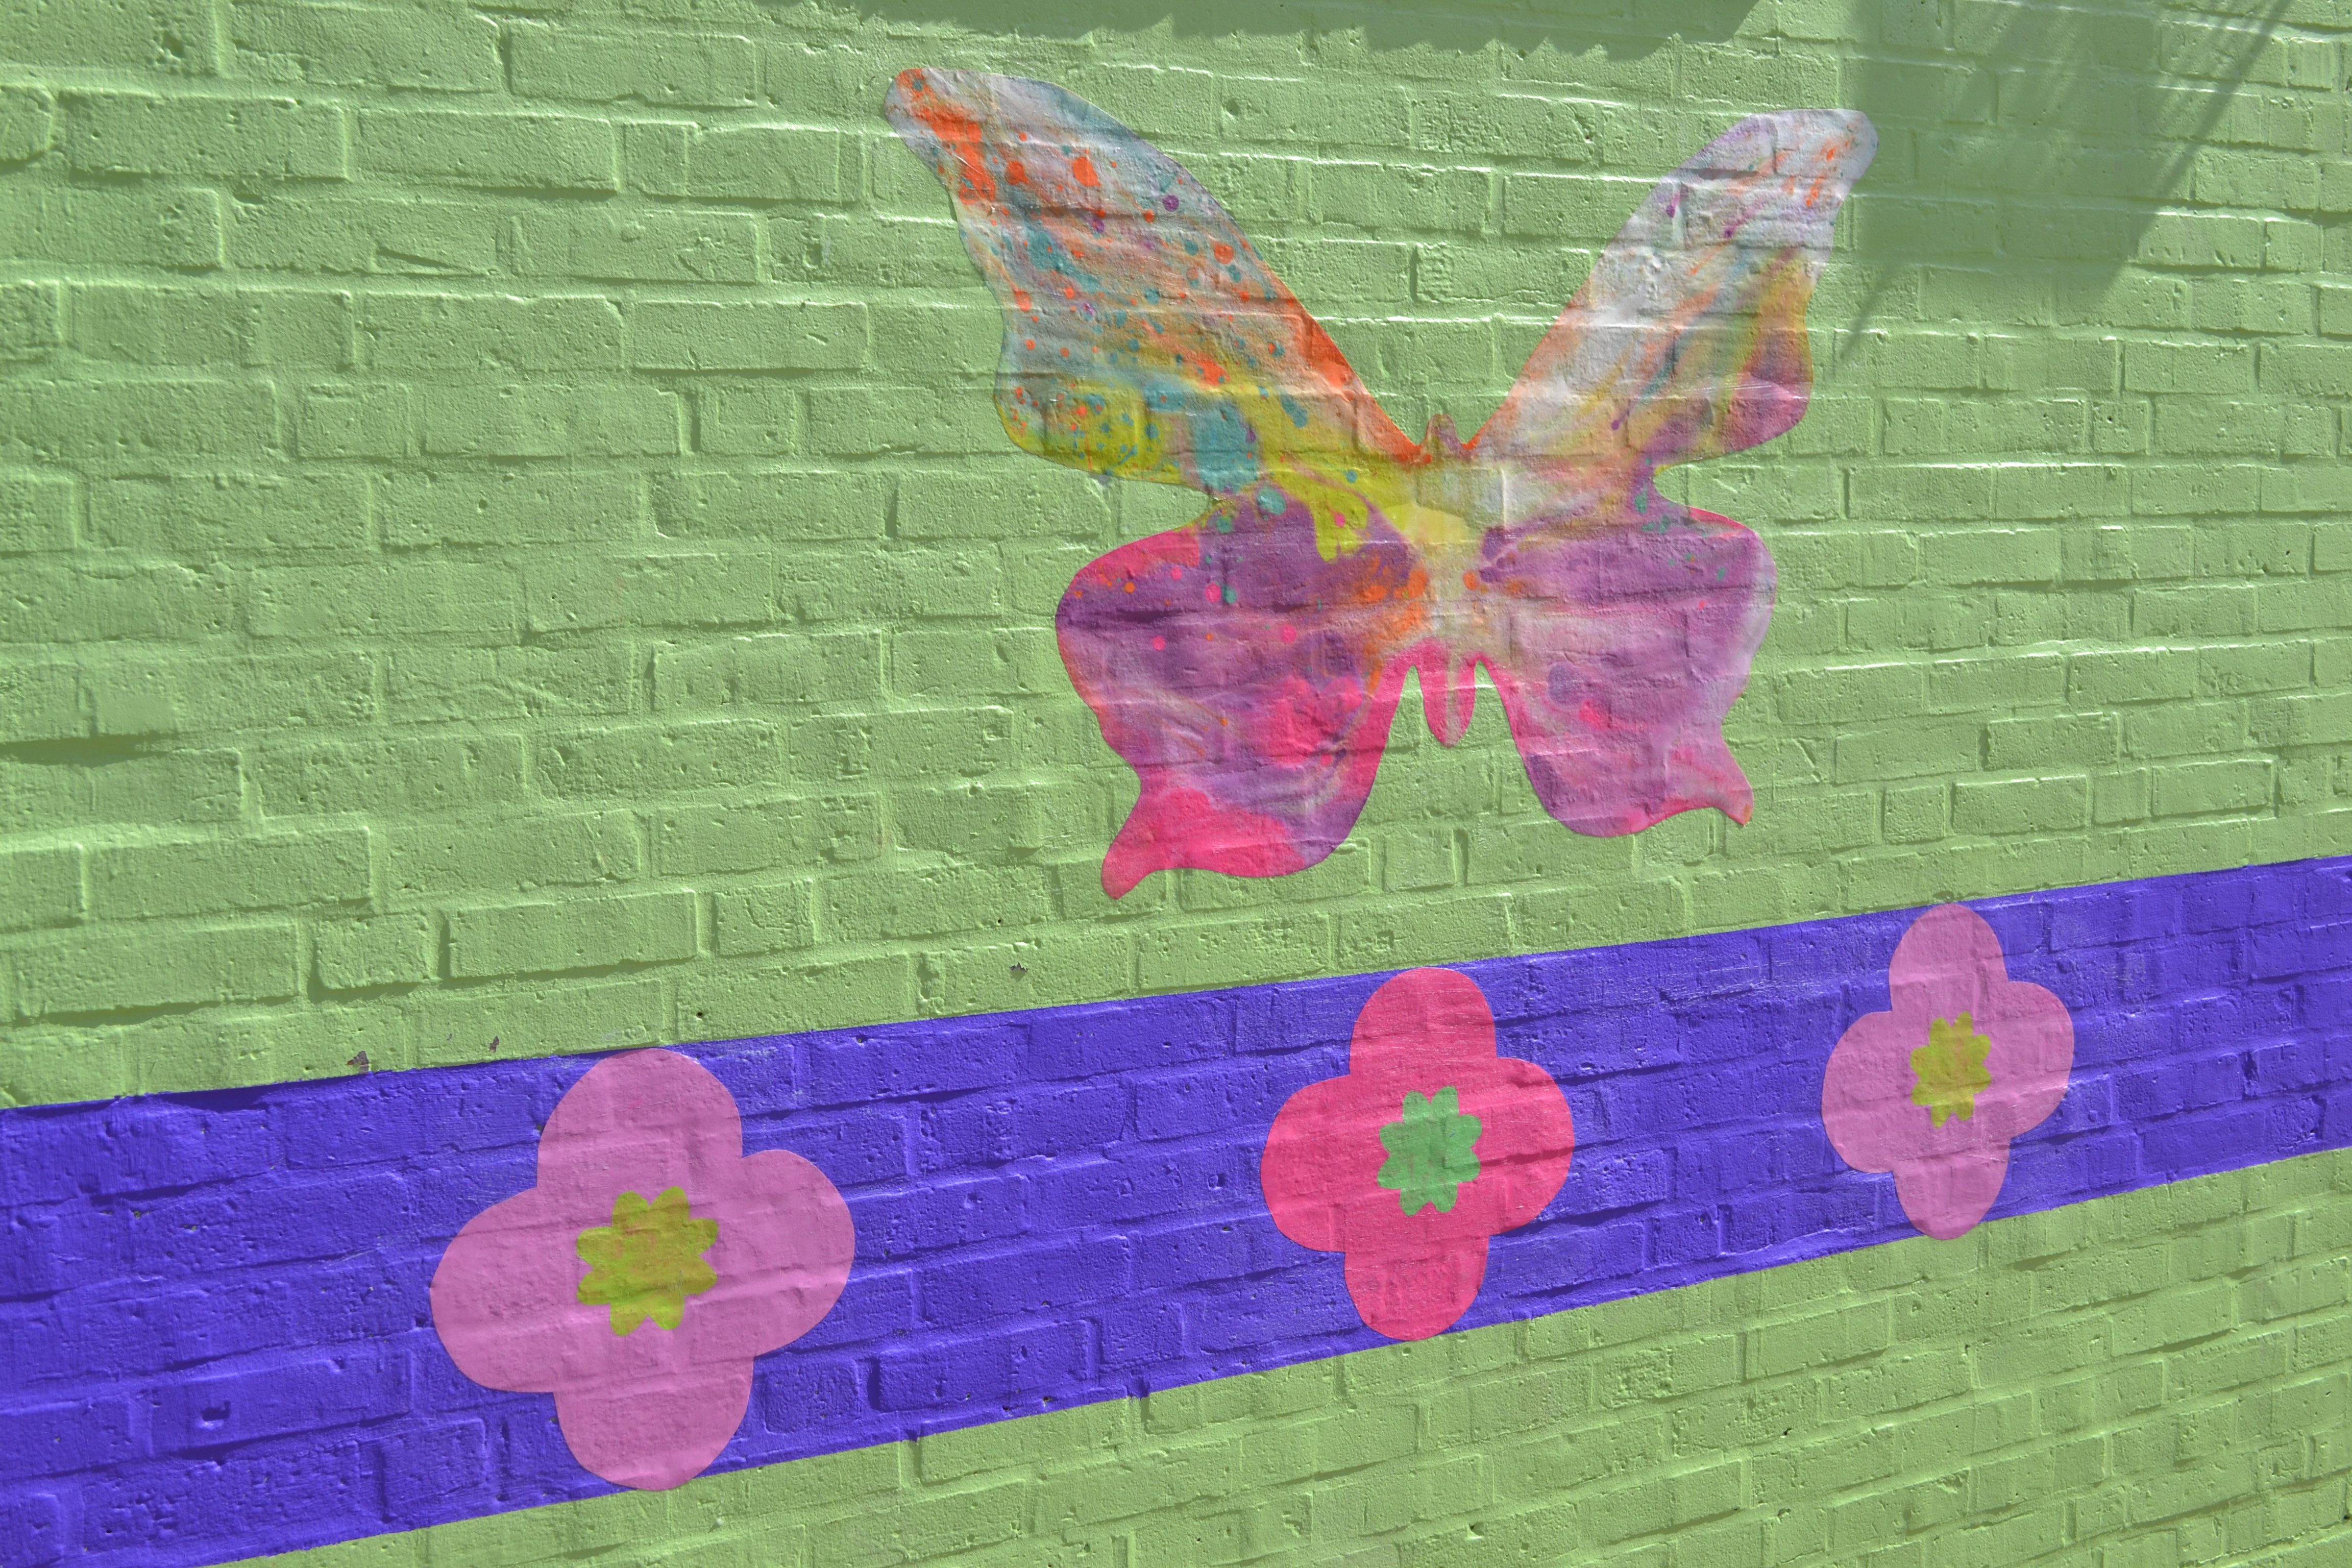 Pre-K students and some summer camp attendees helped paint butterflies on the mural